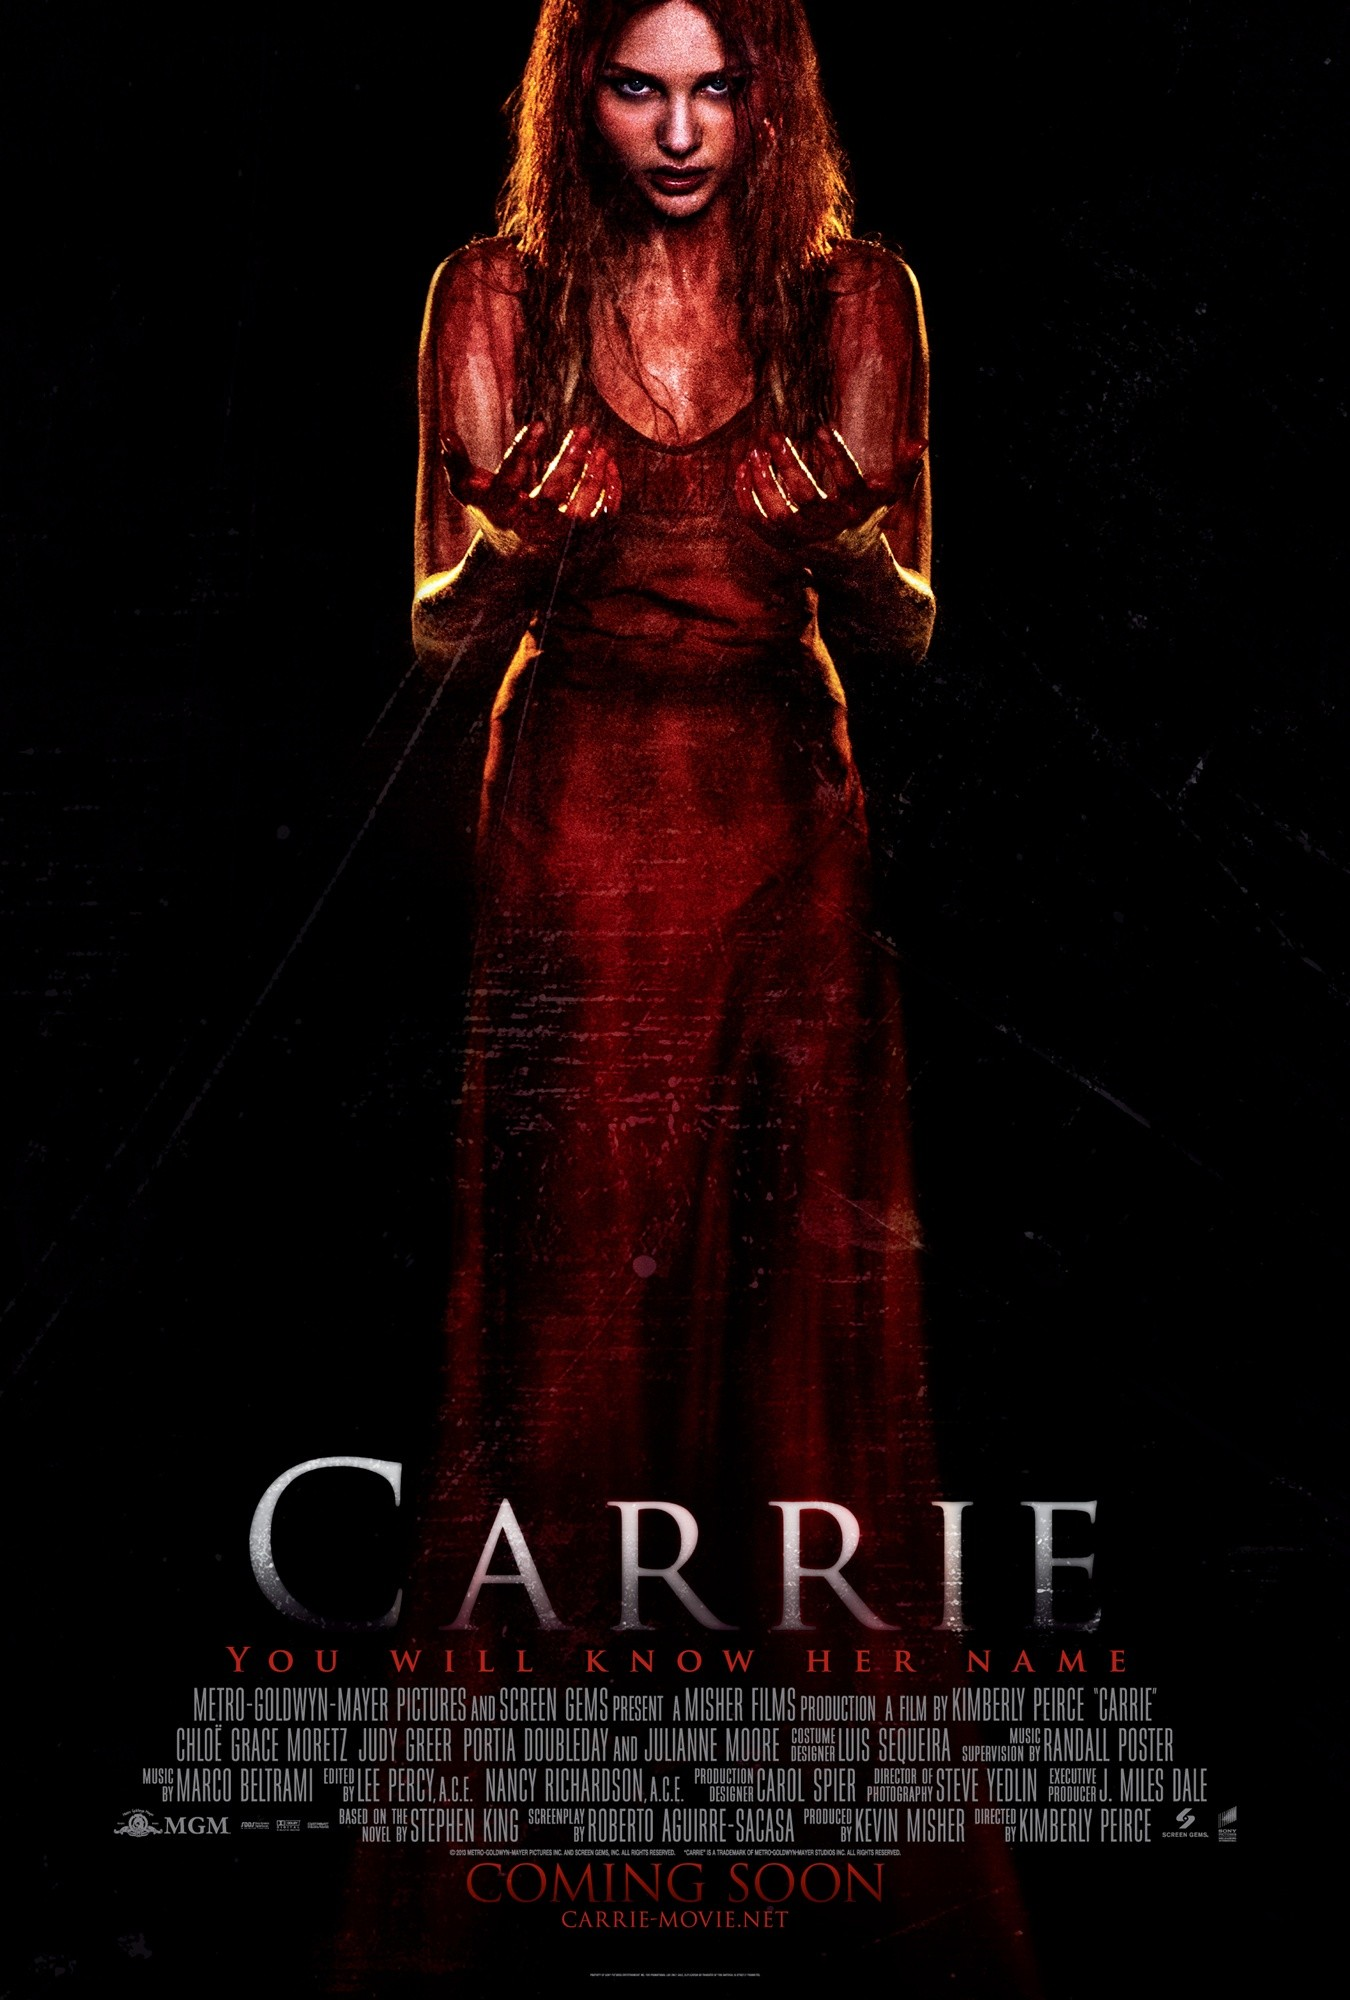 The Enduring Menstrual Mystique of Carrie